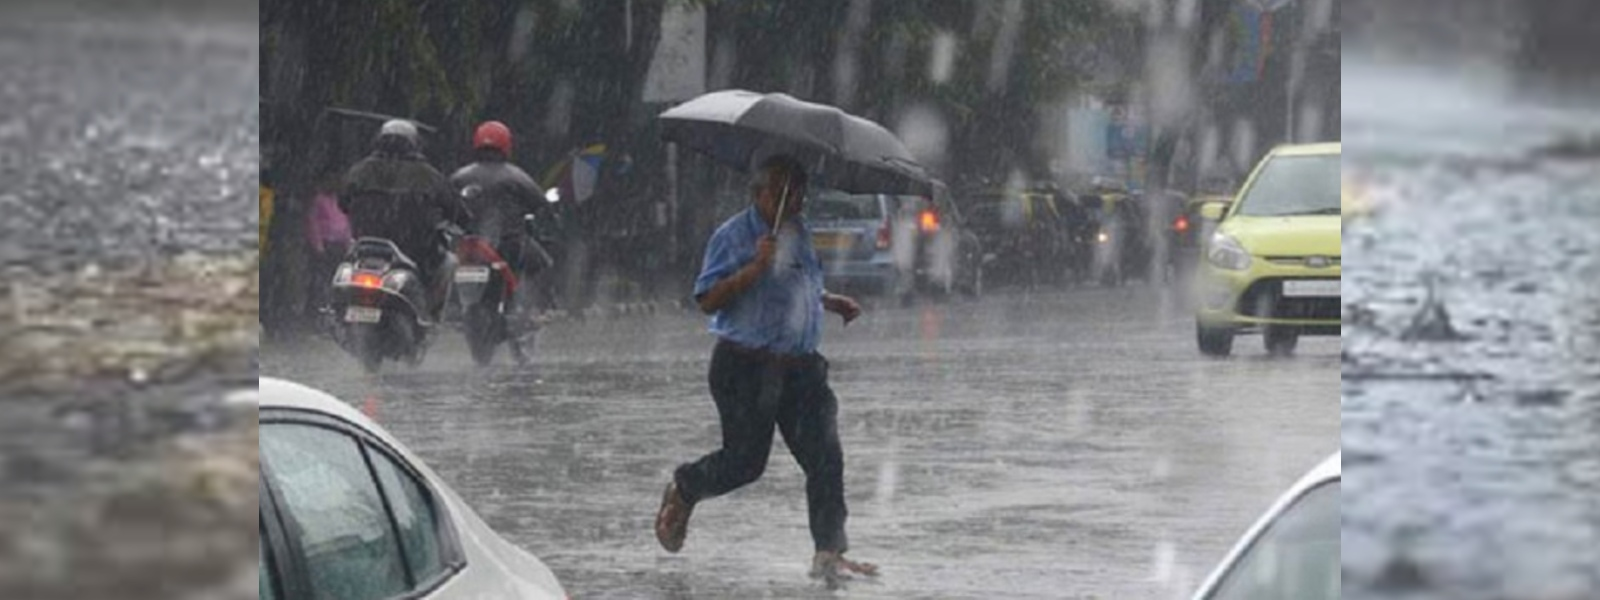 EXTREME WEATHER ALERT: HEAVY DOWNPOUR IN COLOMBO AND SUBURBS